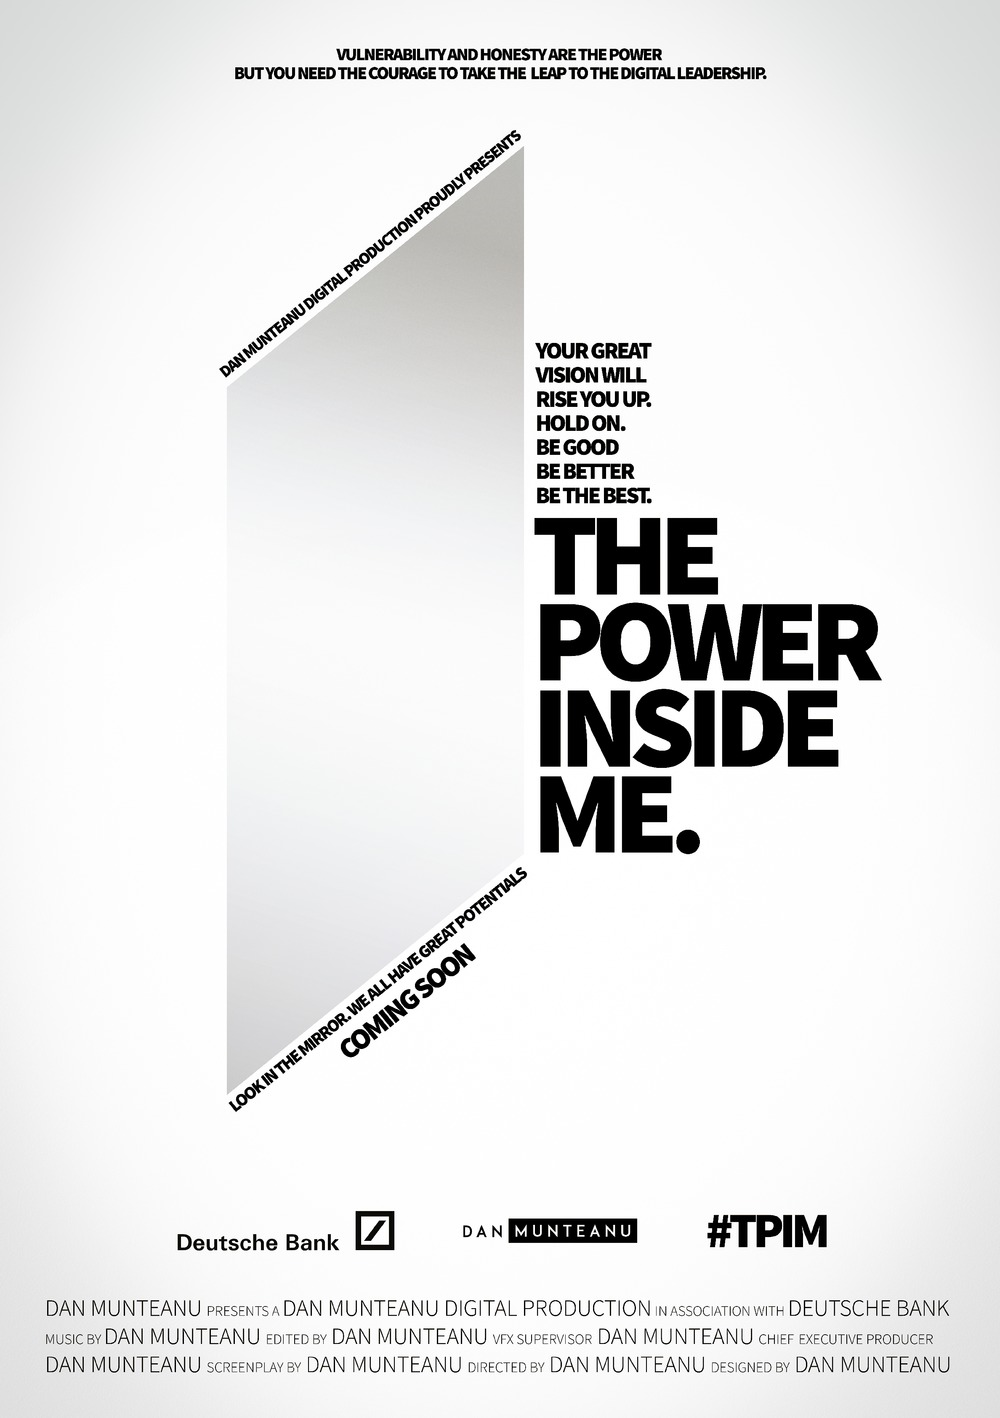 jovoto the power inside me updated v2 4 follow the leader the power inside me updated v2 4